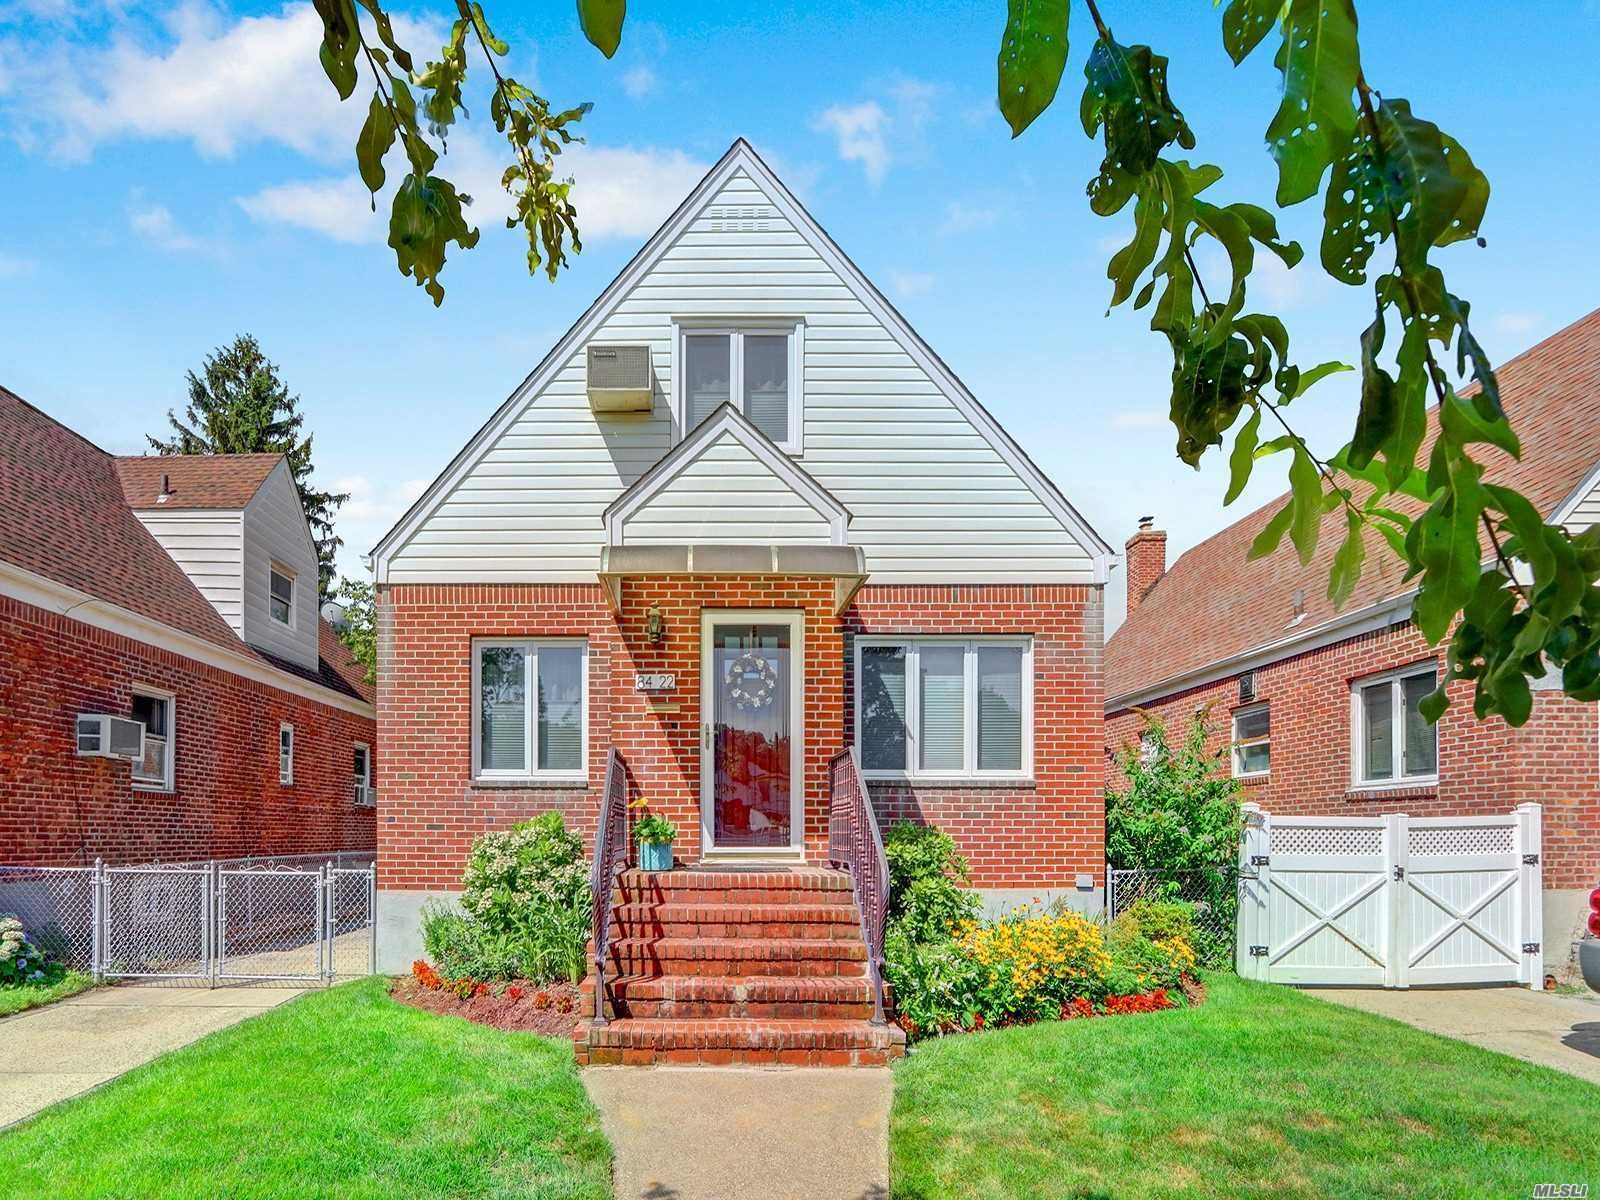 84-22 257th St, Floral Park, NY 11001 - MLS#: 3238073